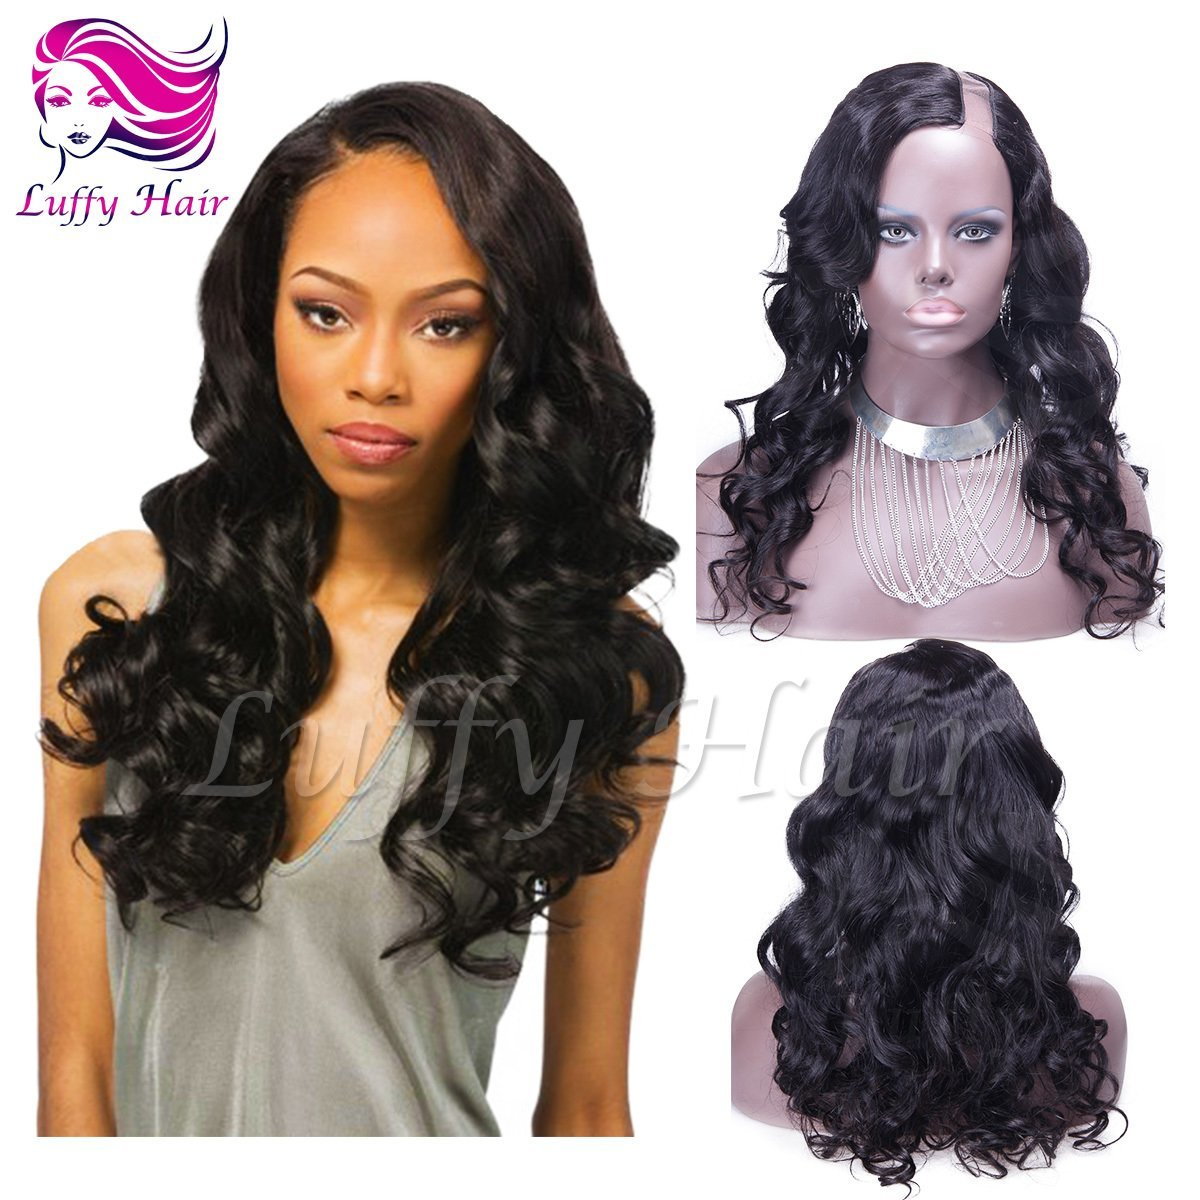 8A Virgin Human Hair Body Wave U Part Wig - KWU005